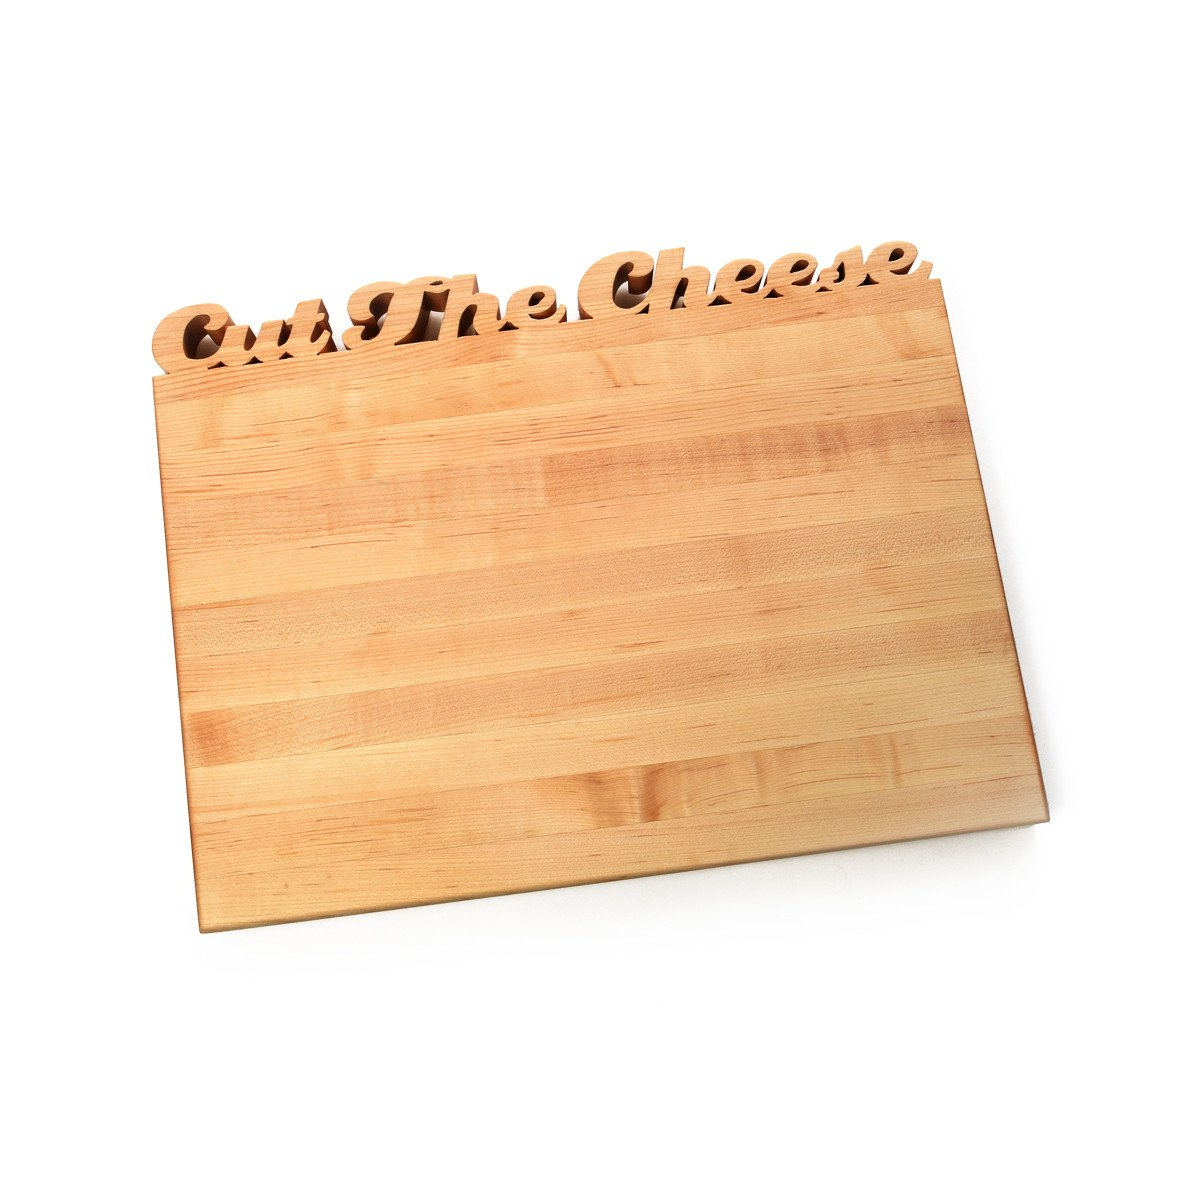 Cheese boards - cheese tray - cheese cutting board - cheese board gift - Words with Boards  - 1